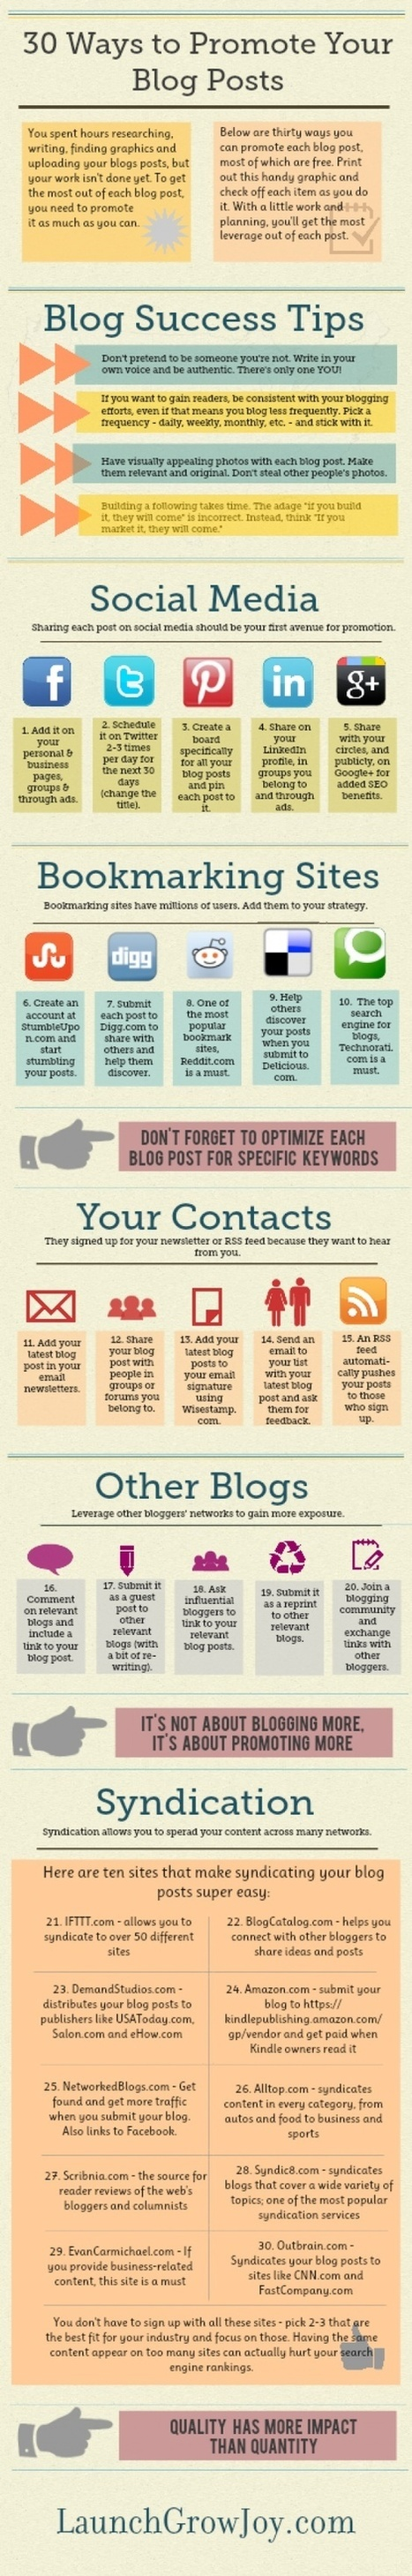 50 ways to promote your blog content | Marketing relazionale e Social Media | Scoop.it